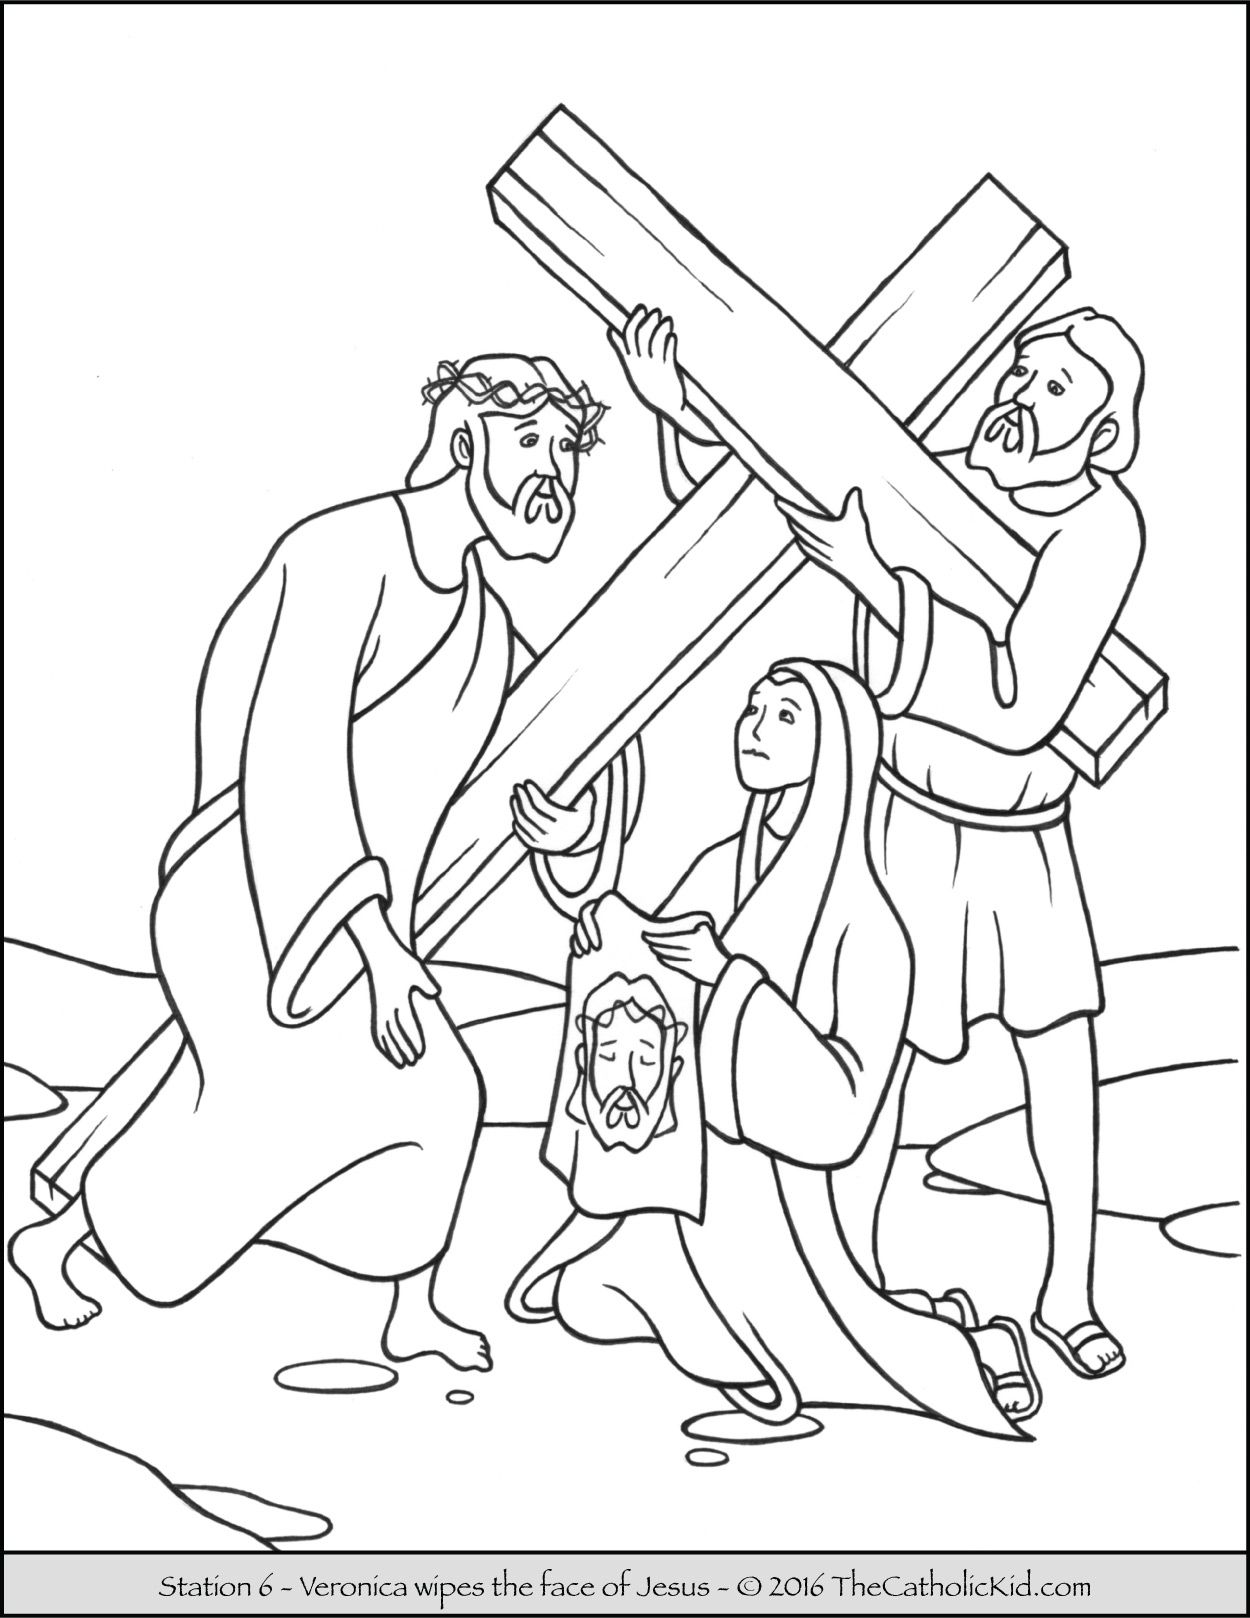 Stations of the Cross Coloring Pages 6 - Veronica wipes the face of ...